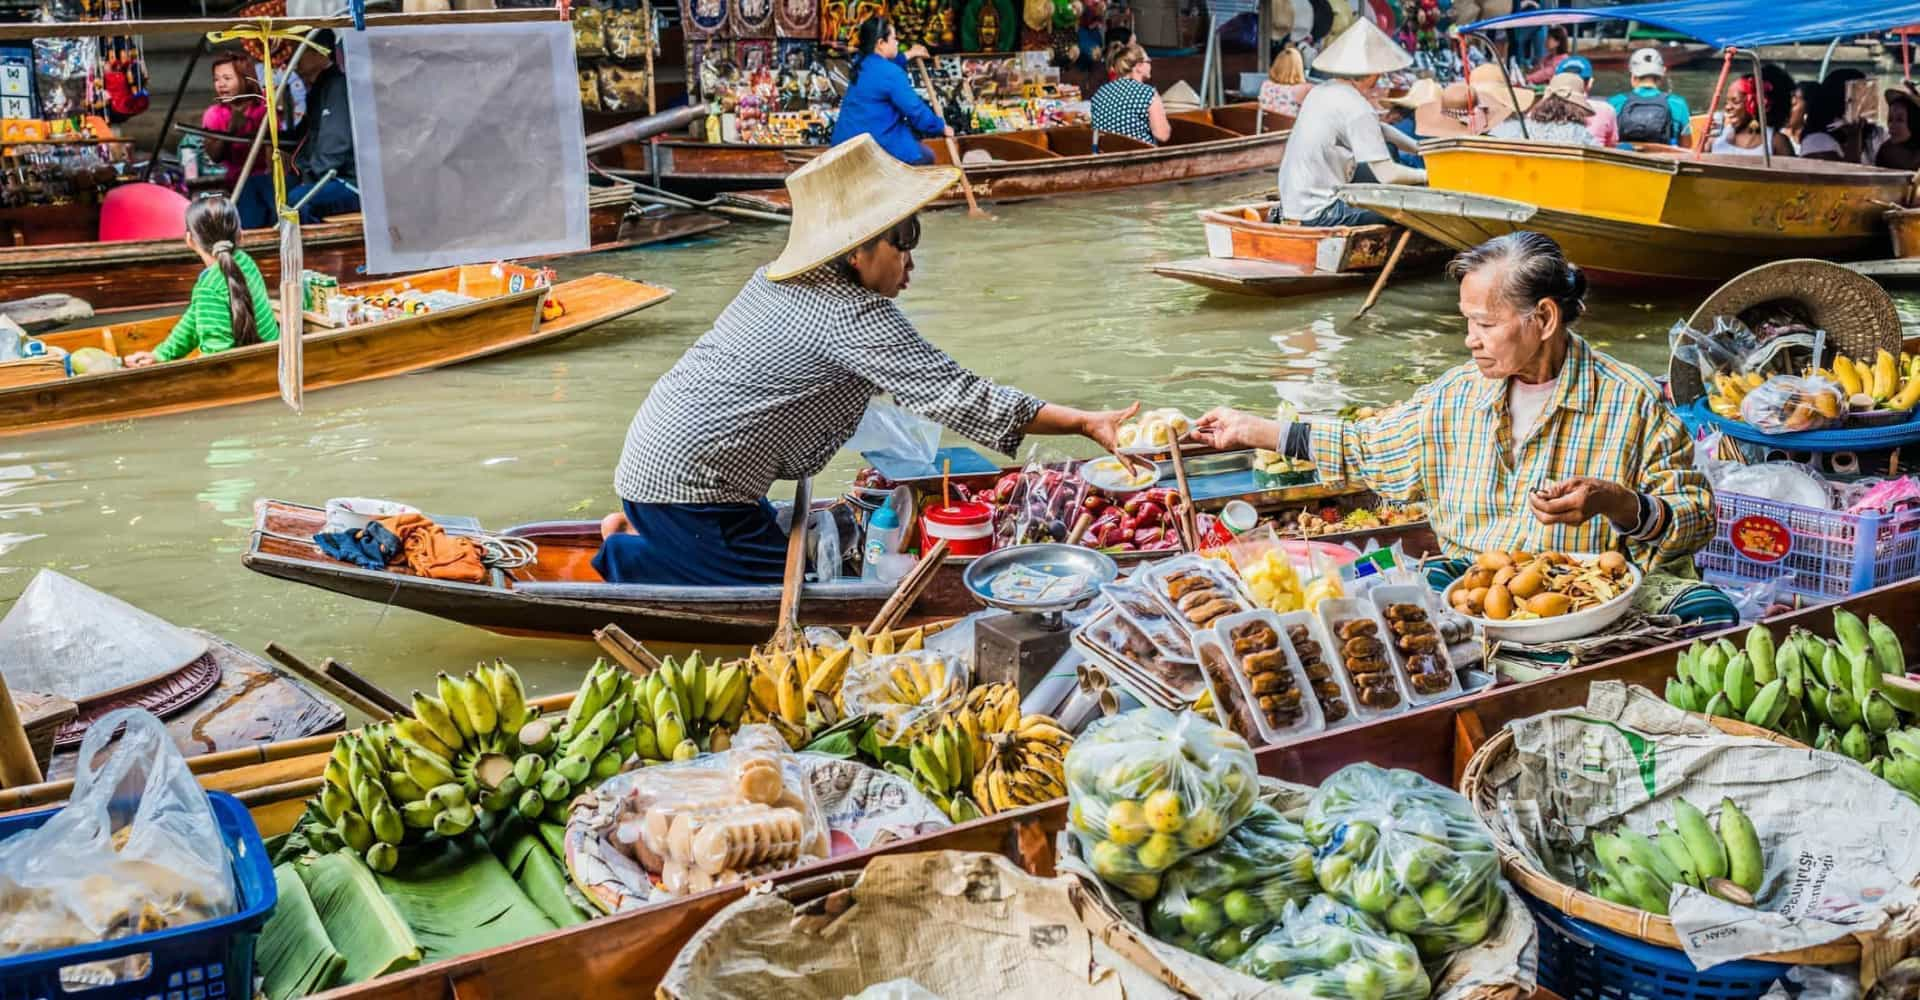 Discover Asia's magical floating markets